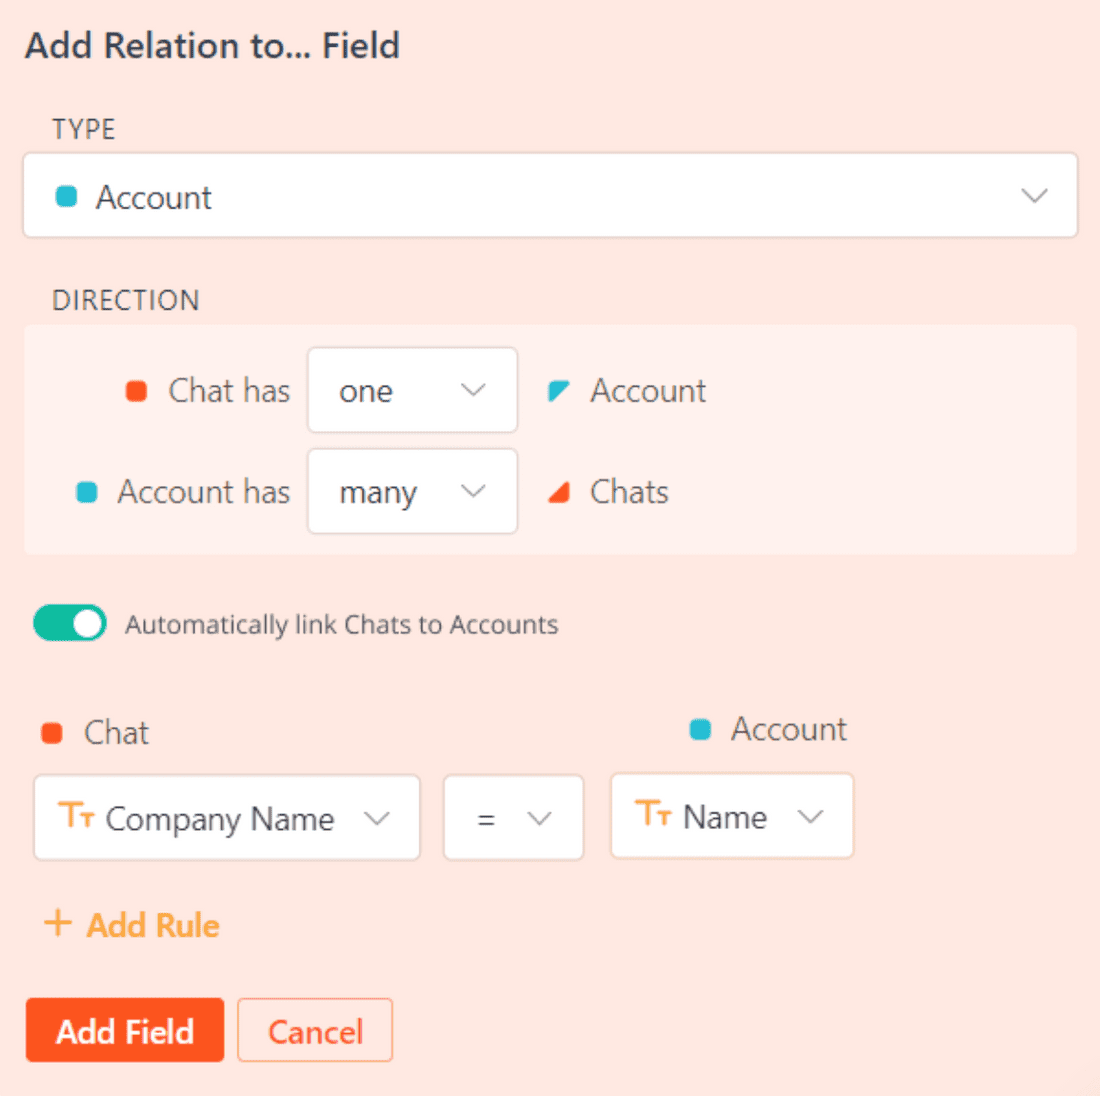 Set a relation between Chat and Account based on a rule